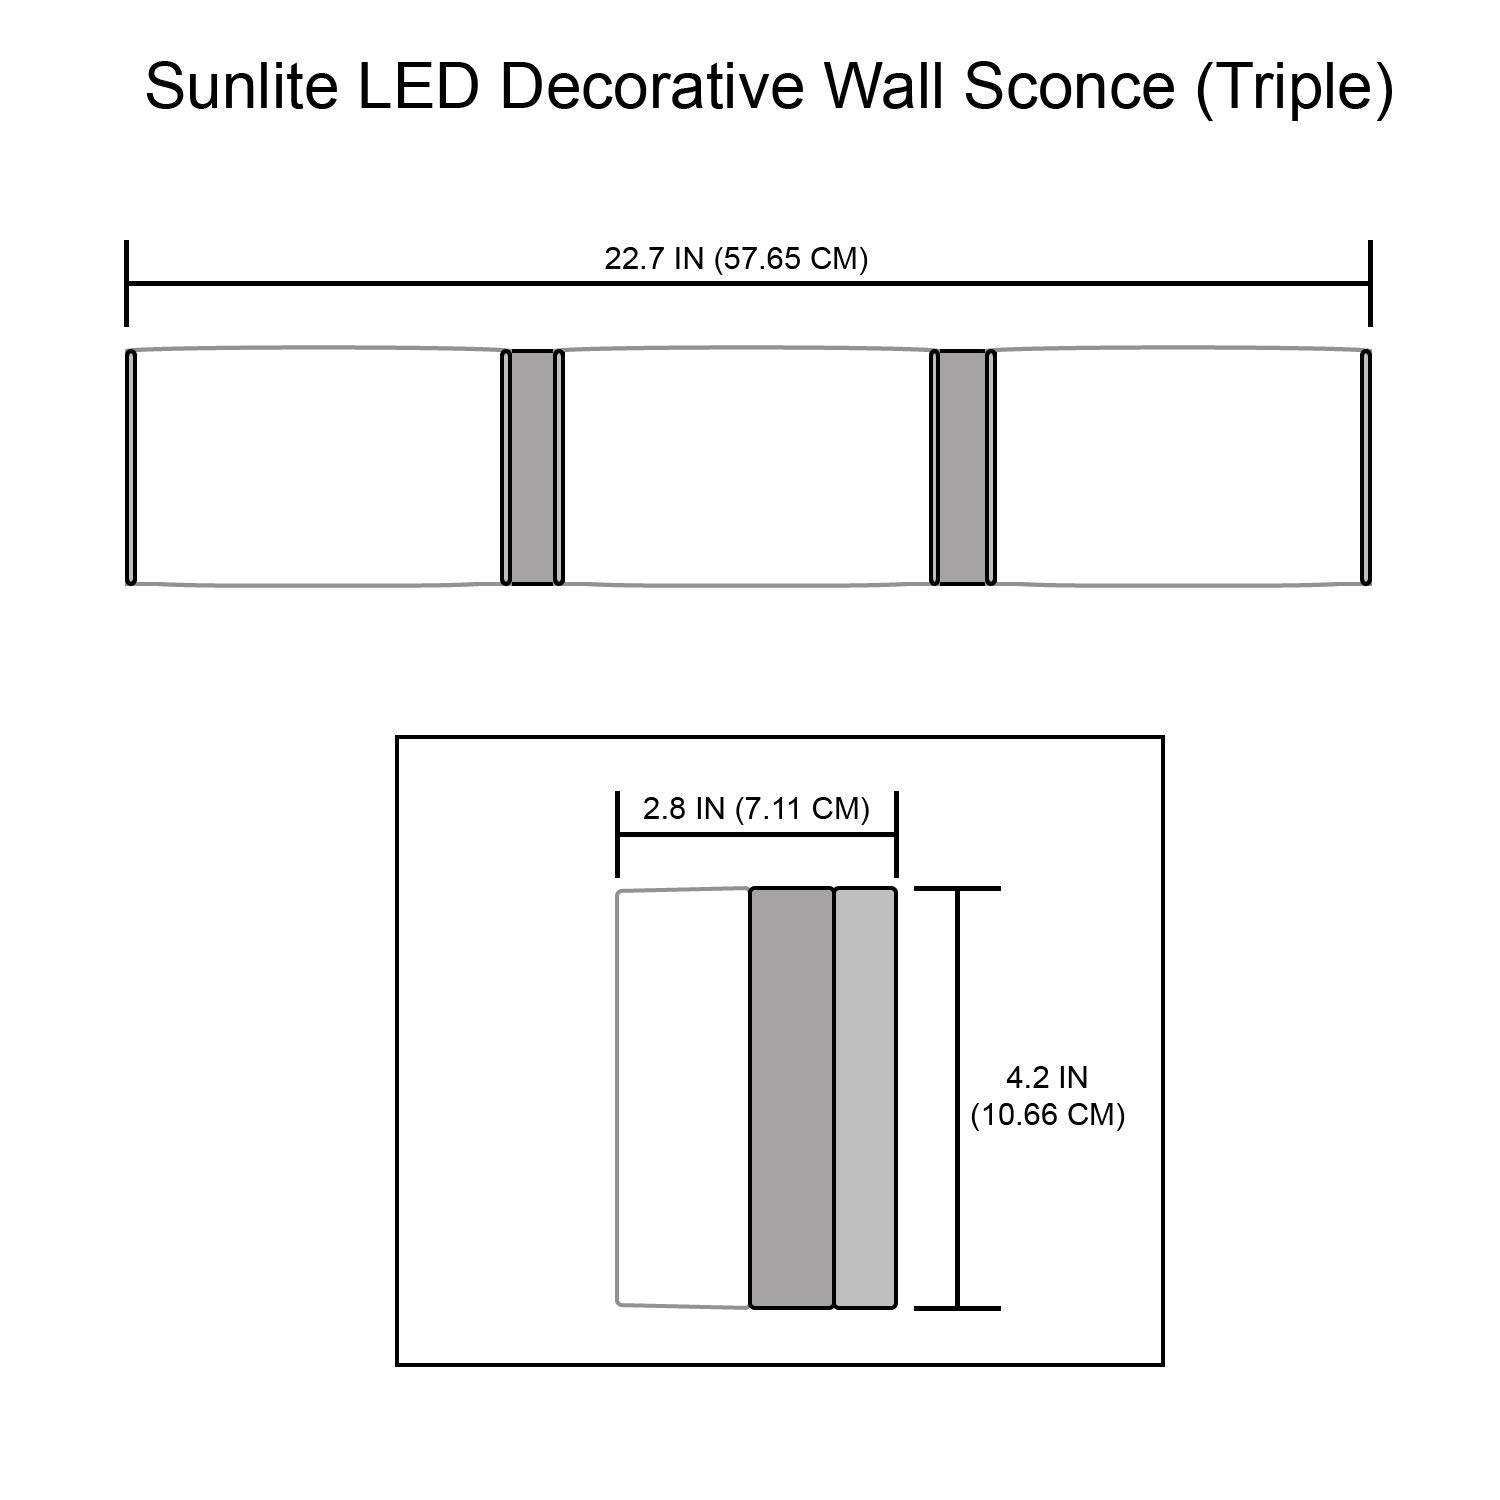 Dimmable 1200 Lumen 2 Lights 30K Warm White 20 Watts Sunlite 82062-SU LED Decorative Wall Sconce Fxiture Brushed Nickel